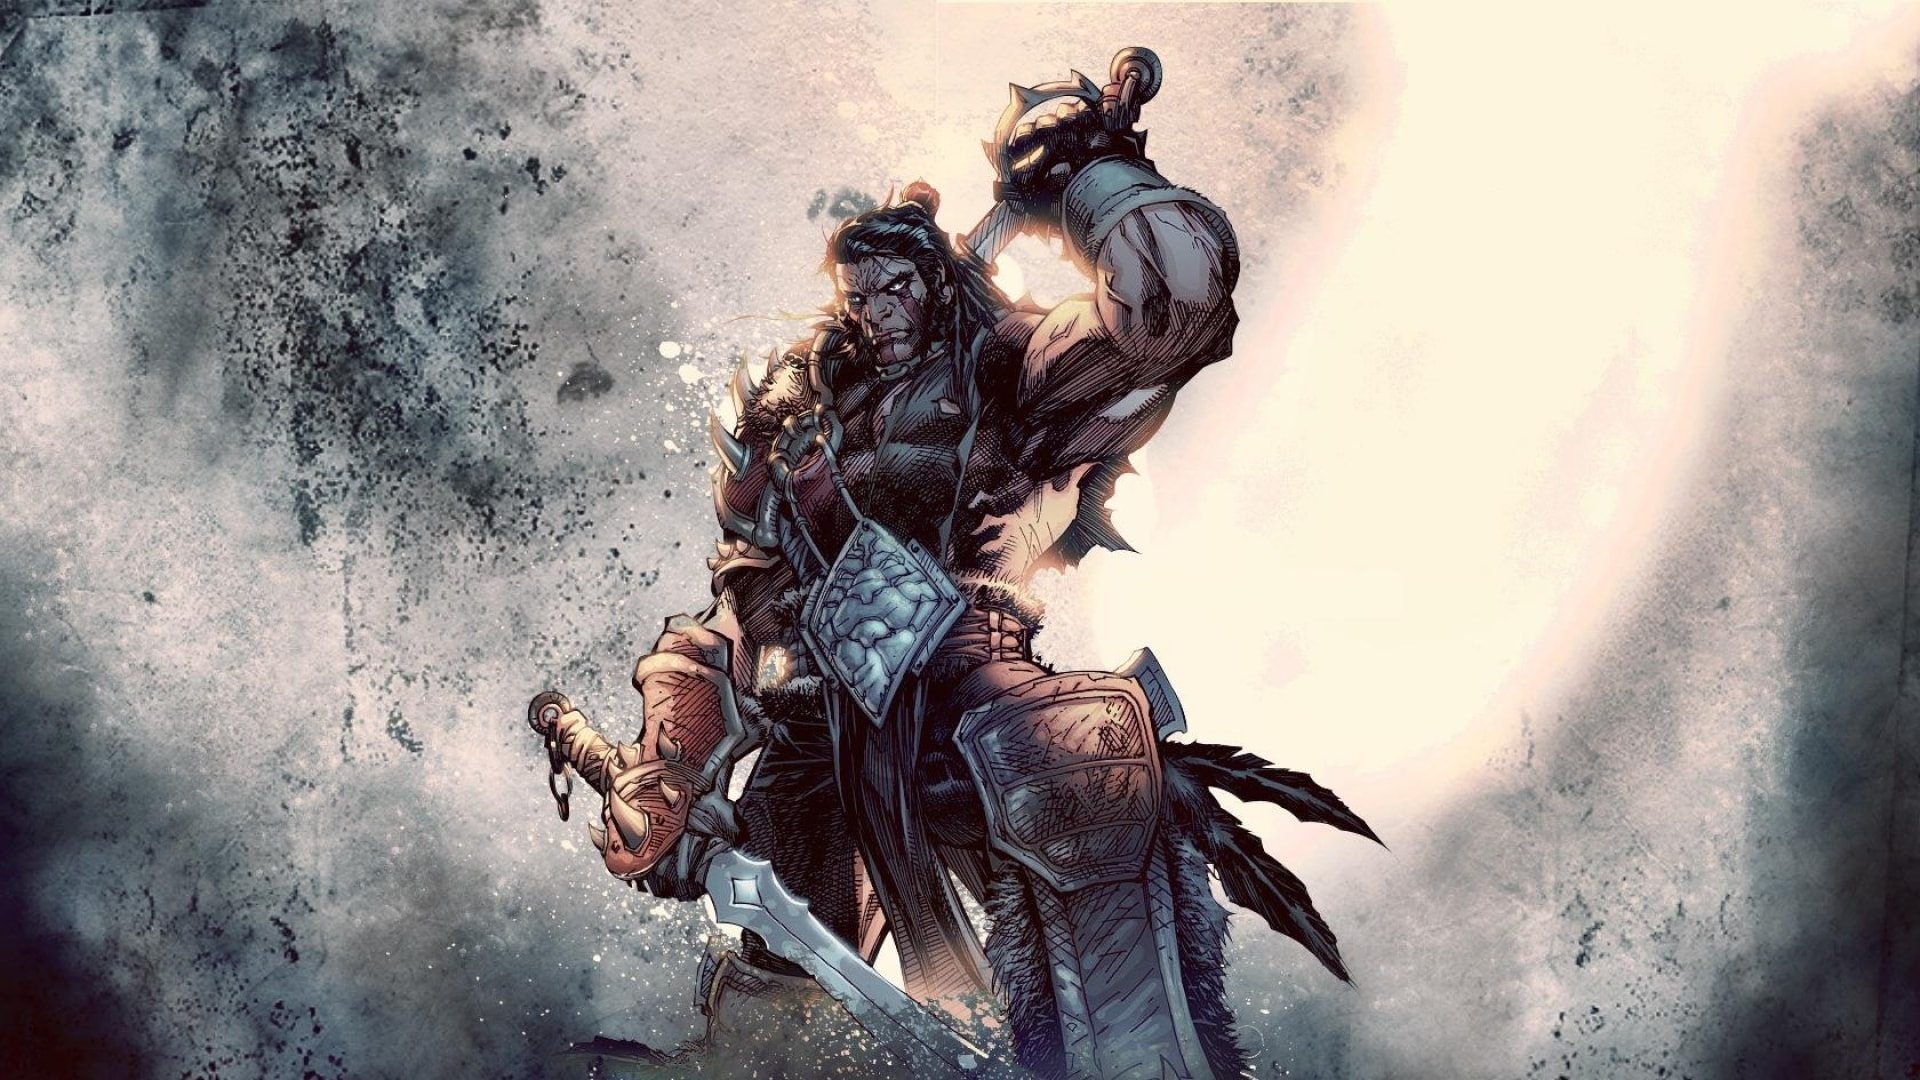 WOW: Varian Wrynn full hd wallpapers